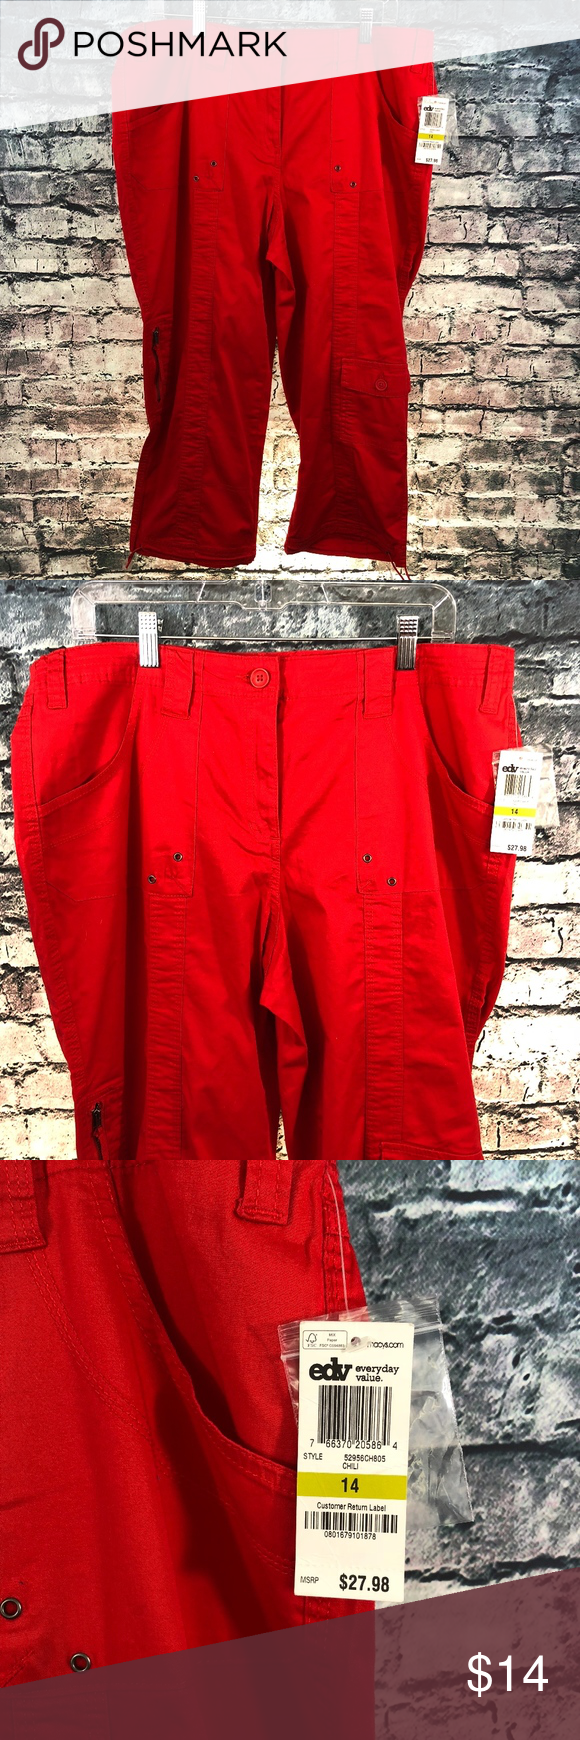 846f7a6b069381 Style & Co Plus Size Red Utility Capri Pants Style & Co Plus Size Red  Utility Capri Pants Size: 14 Condition: NWT, smoke free home, all seams and  pockets ...